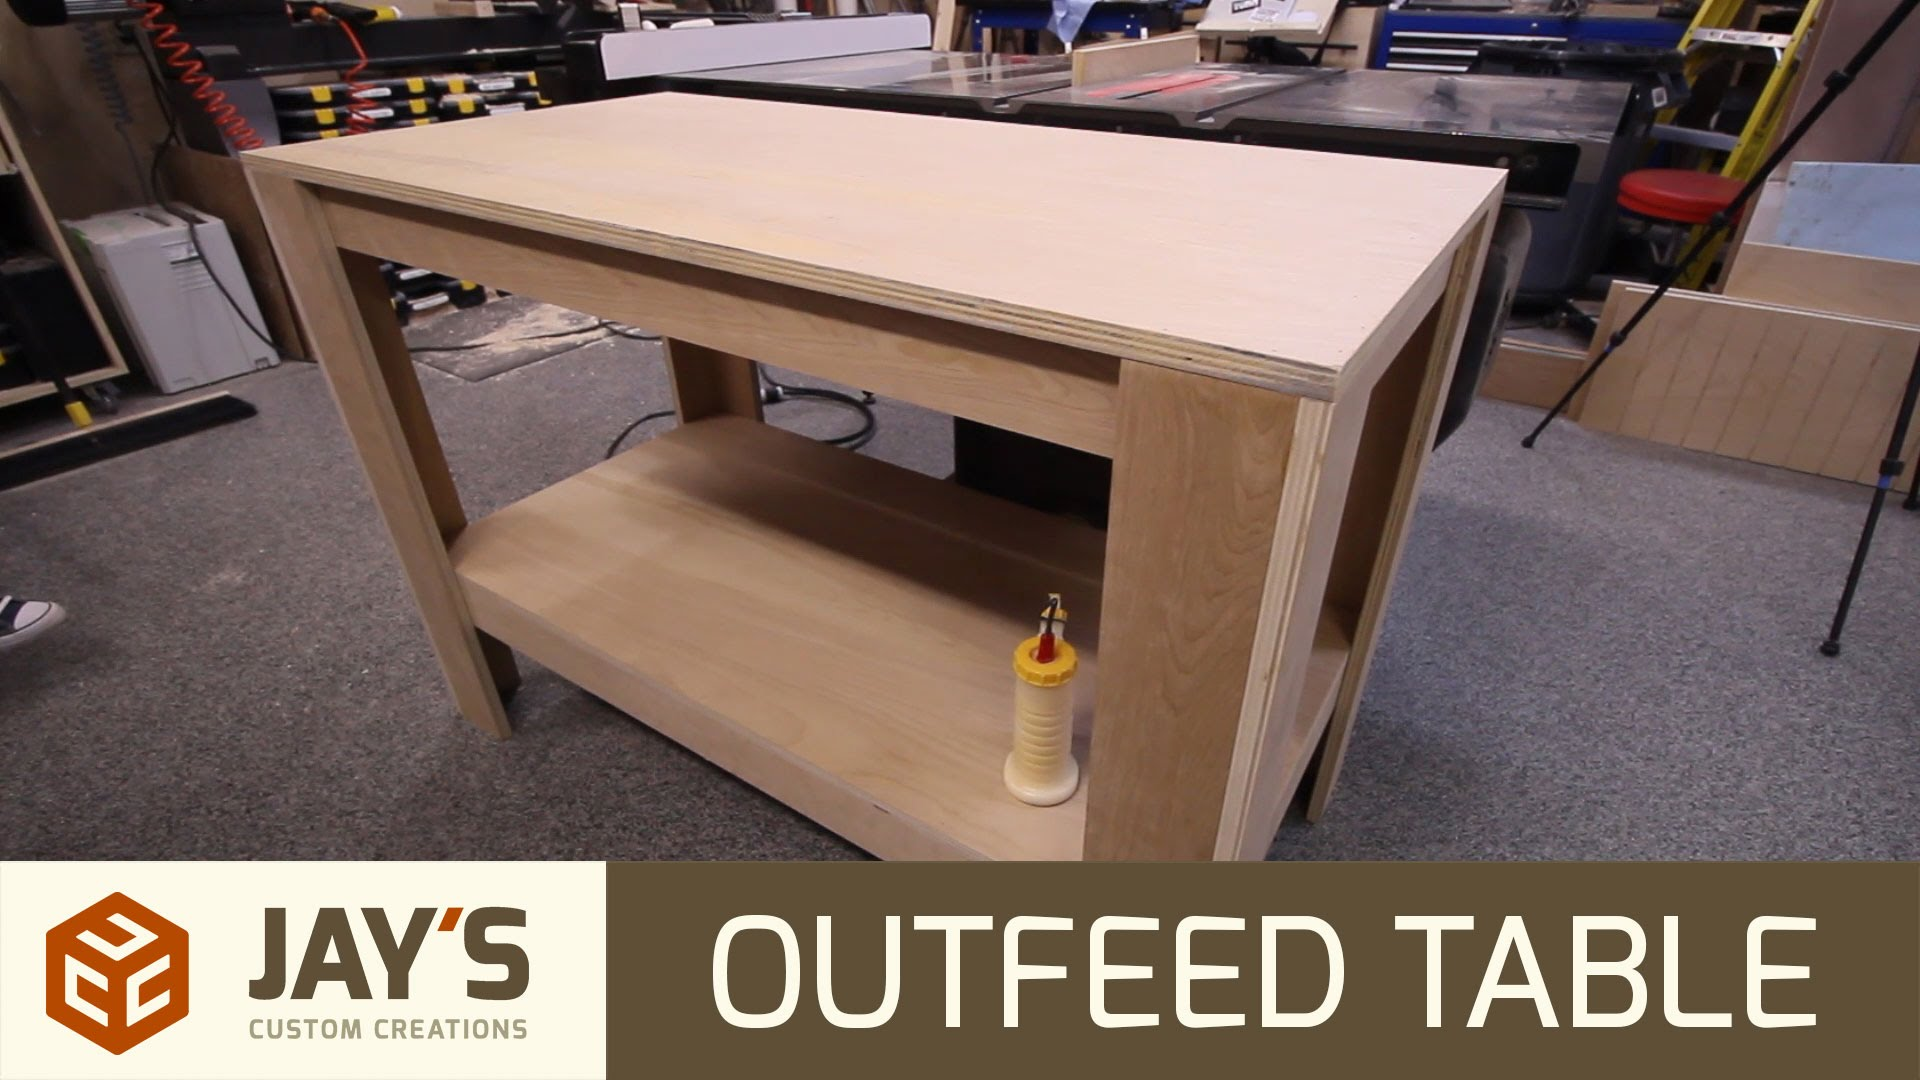 Shop Table From 1 Sheet Of Plywood Jays Custom Creations